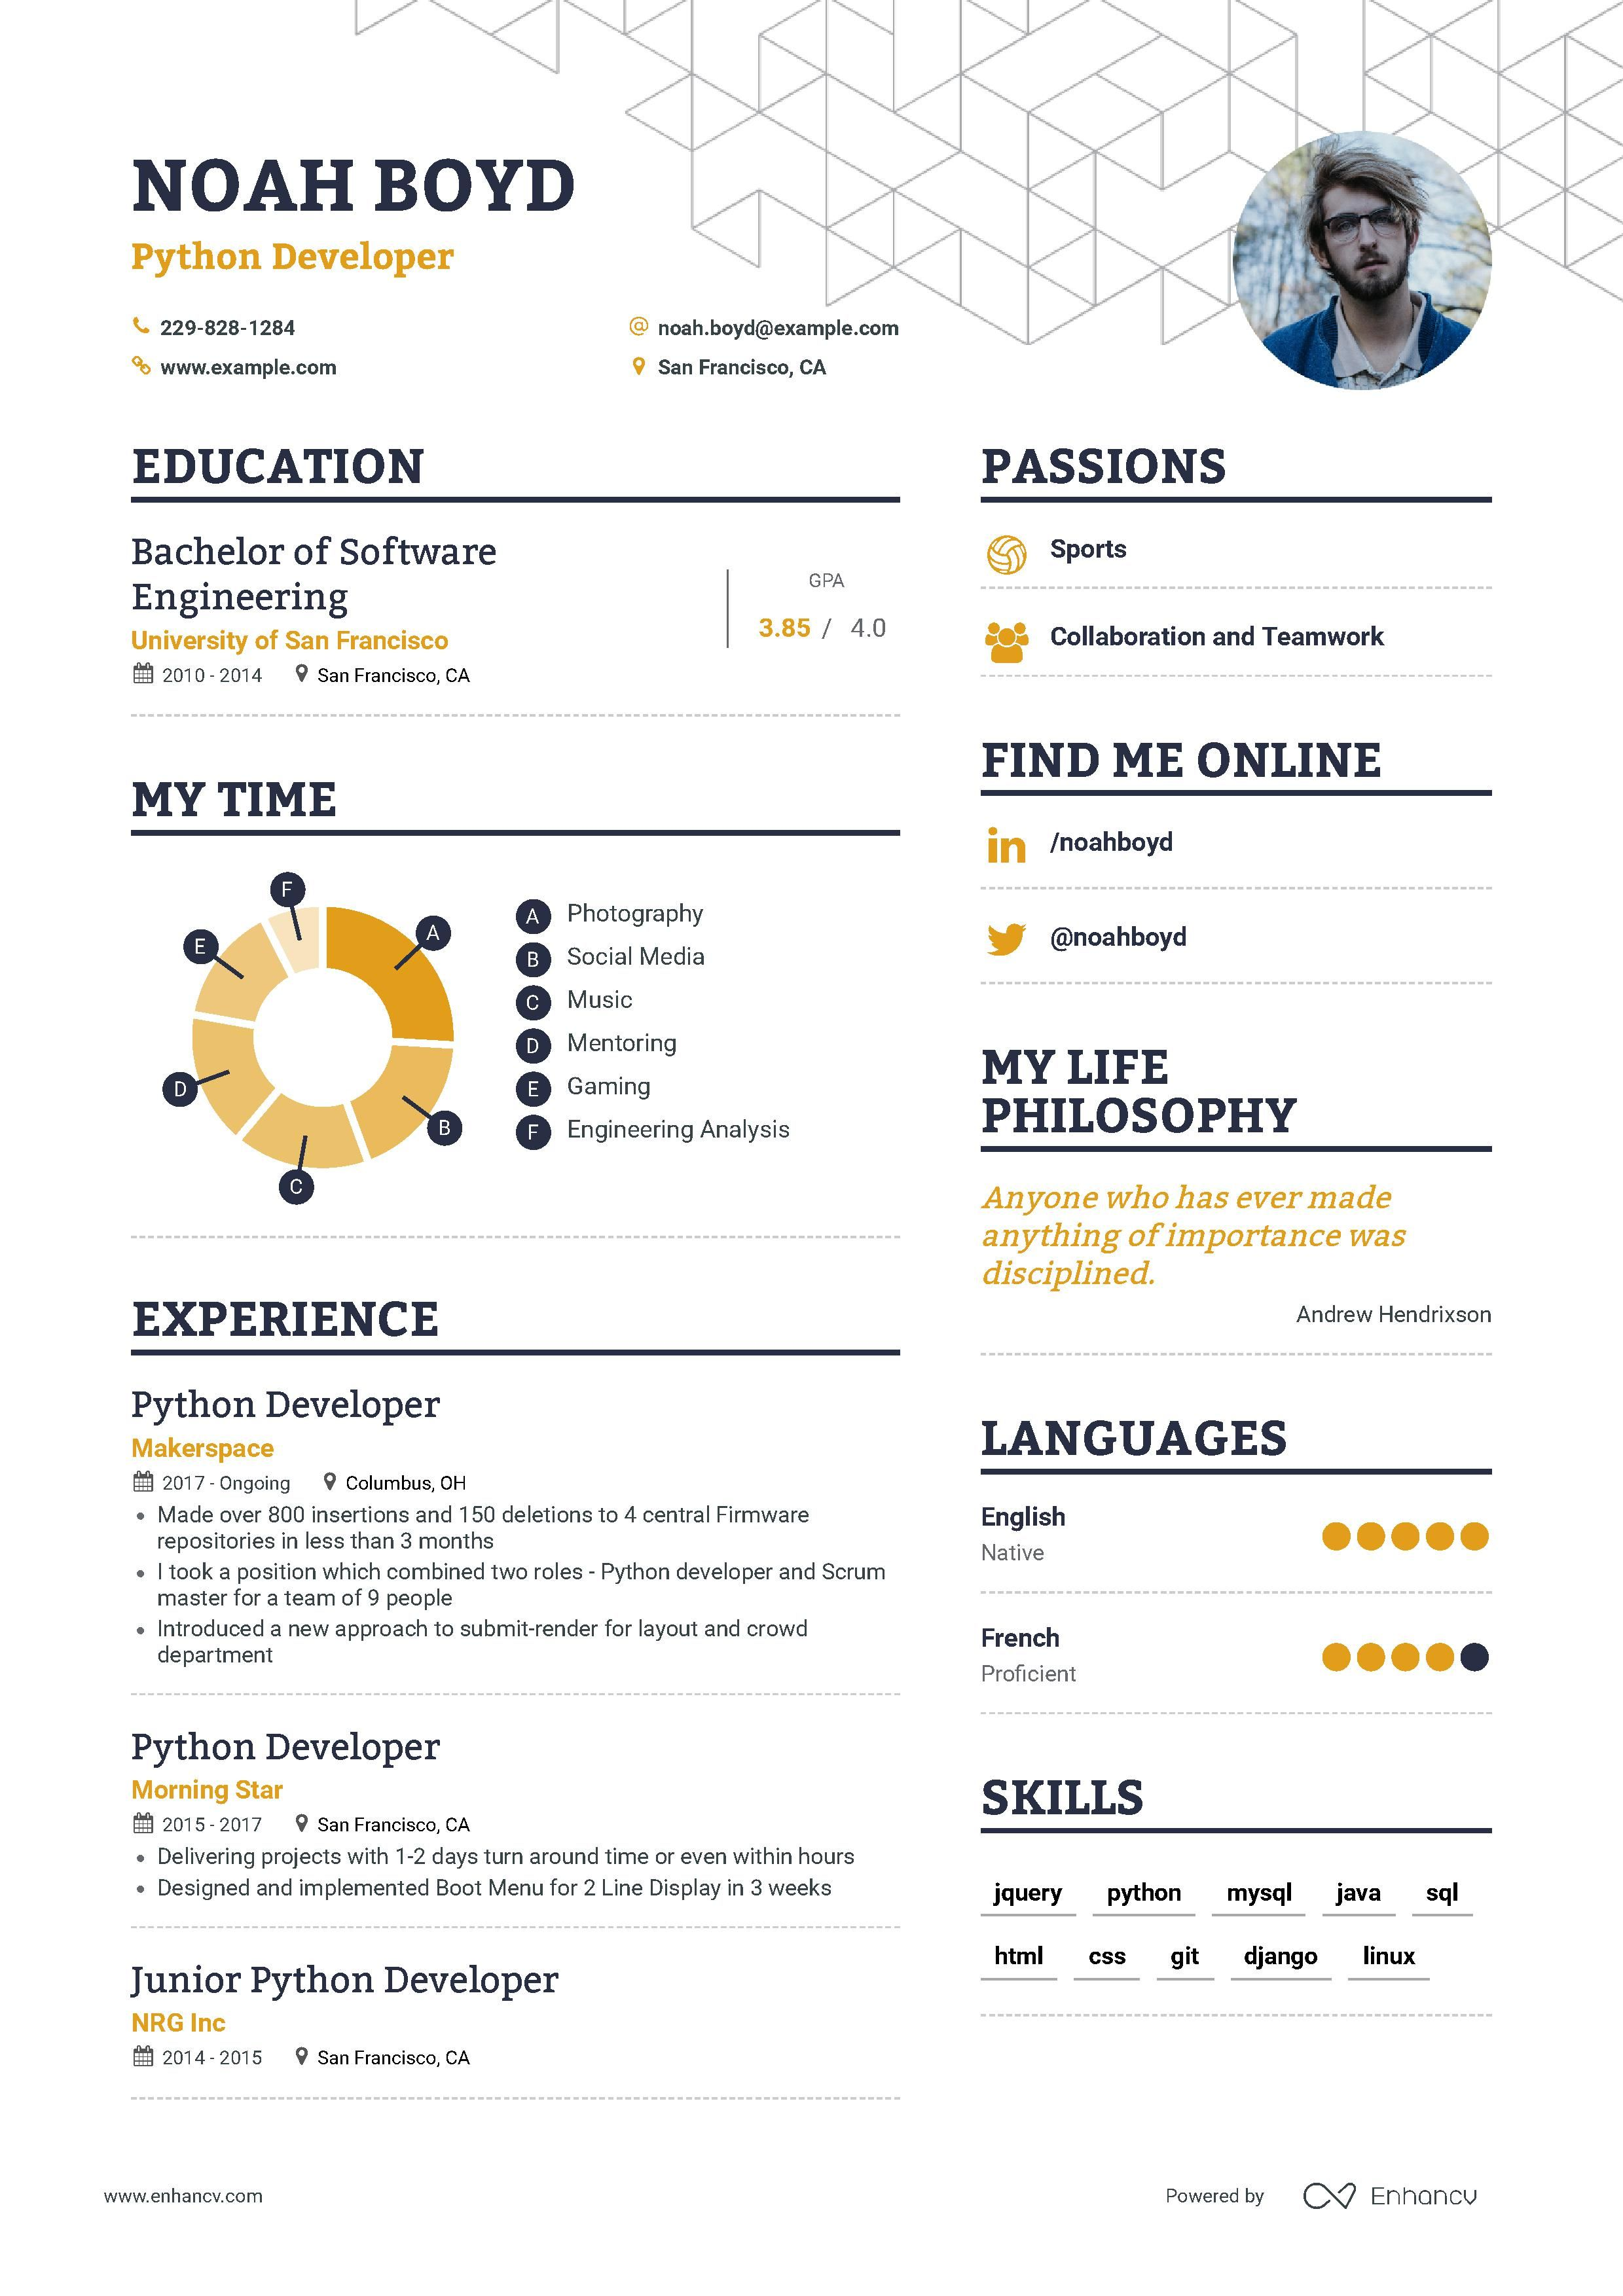 Freelance Software Engineer Resume This Is A Summary Of My Experience And Education Profile Systems E Job Resume Samples Free Resume Samples Resume Templates